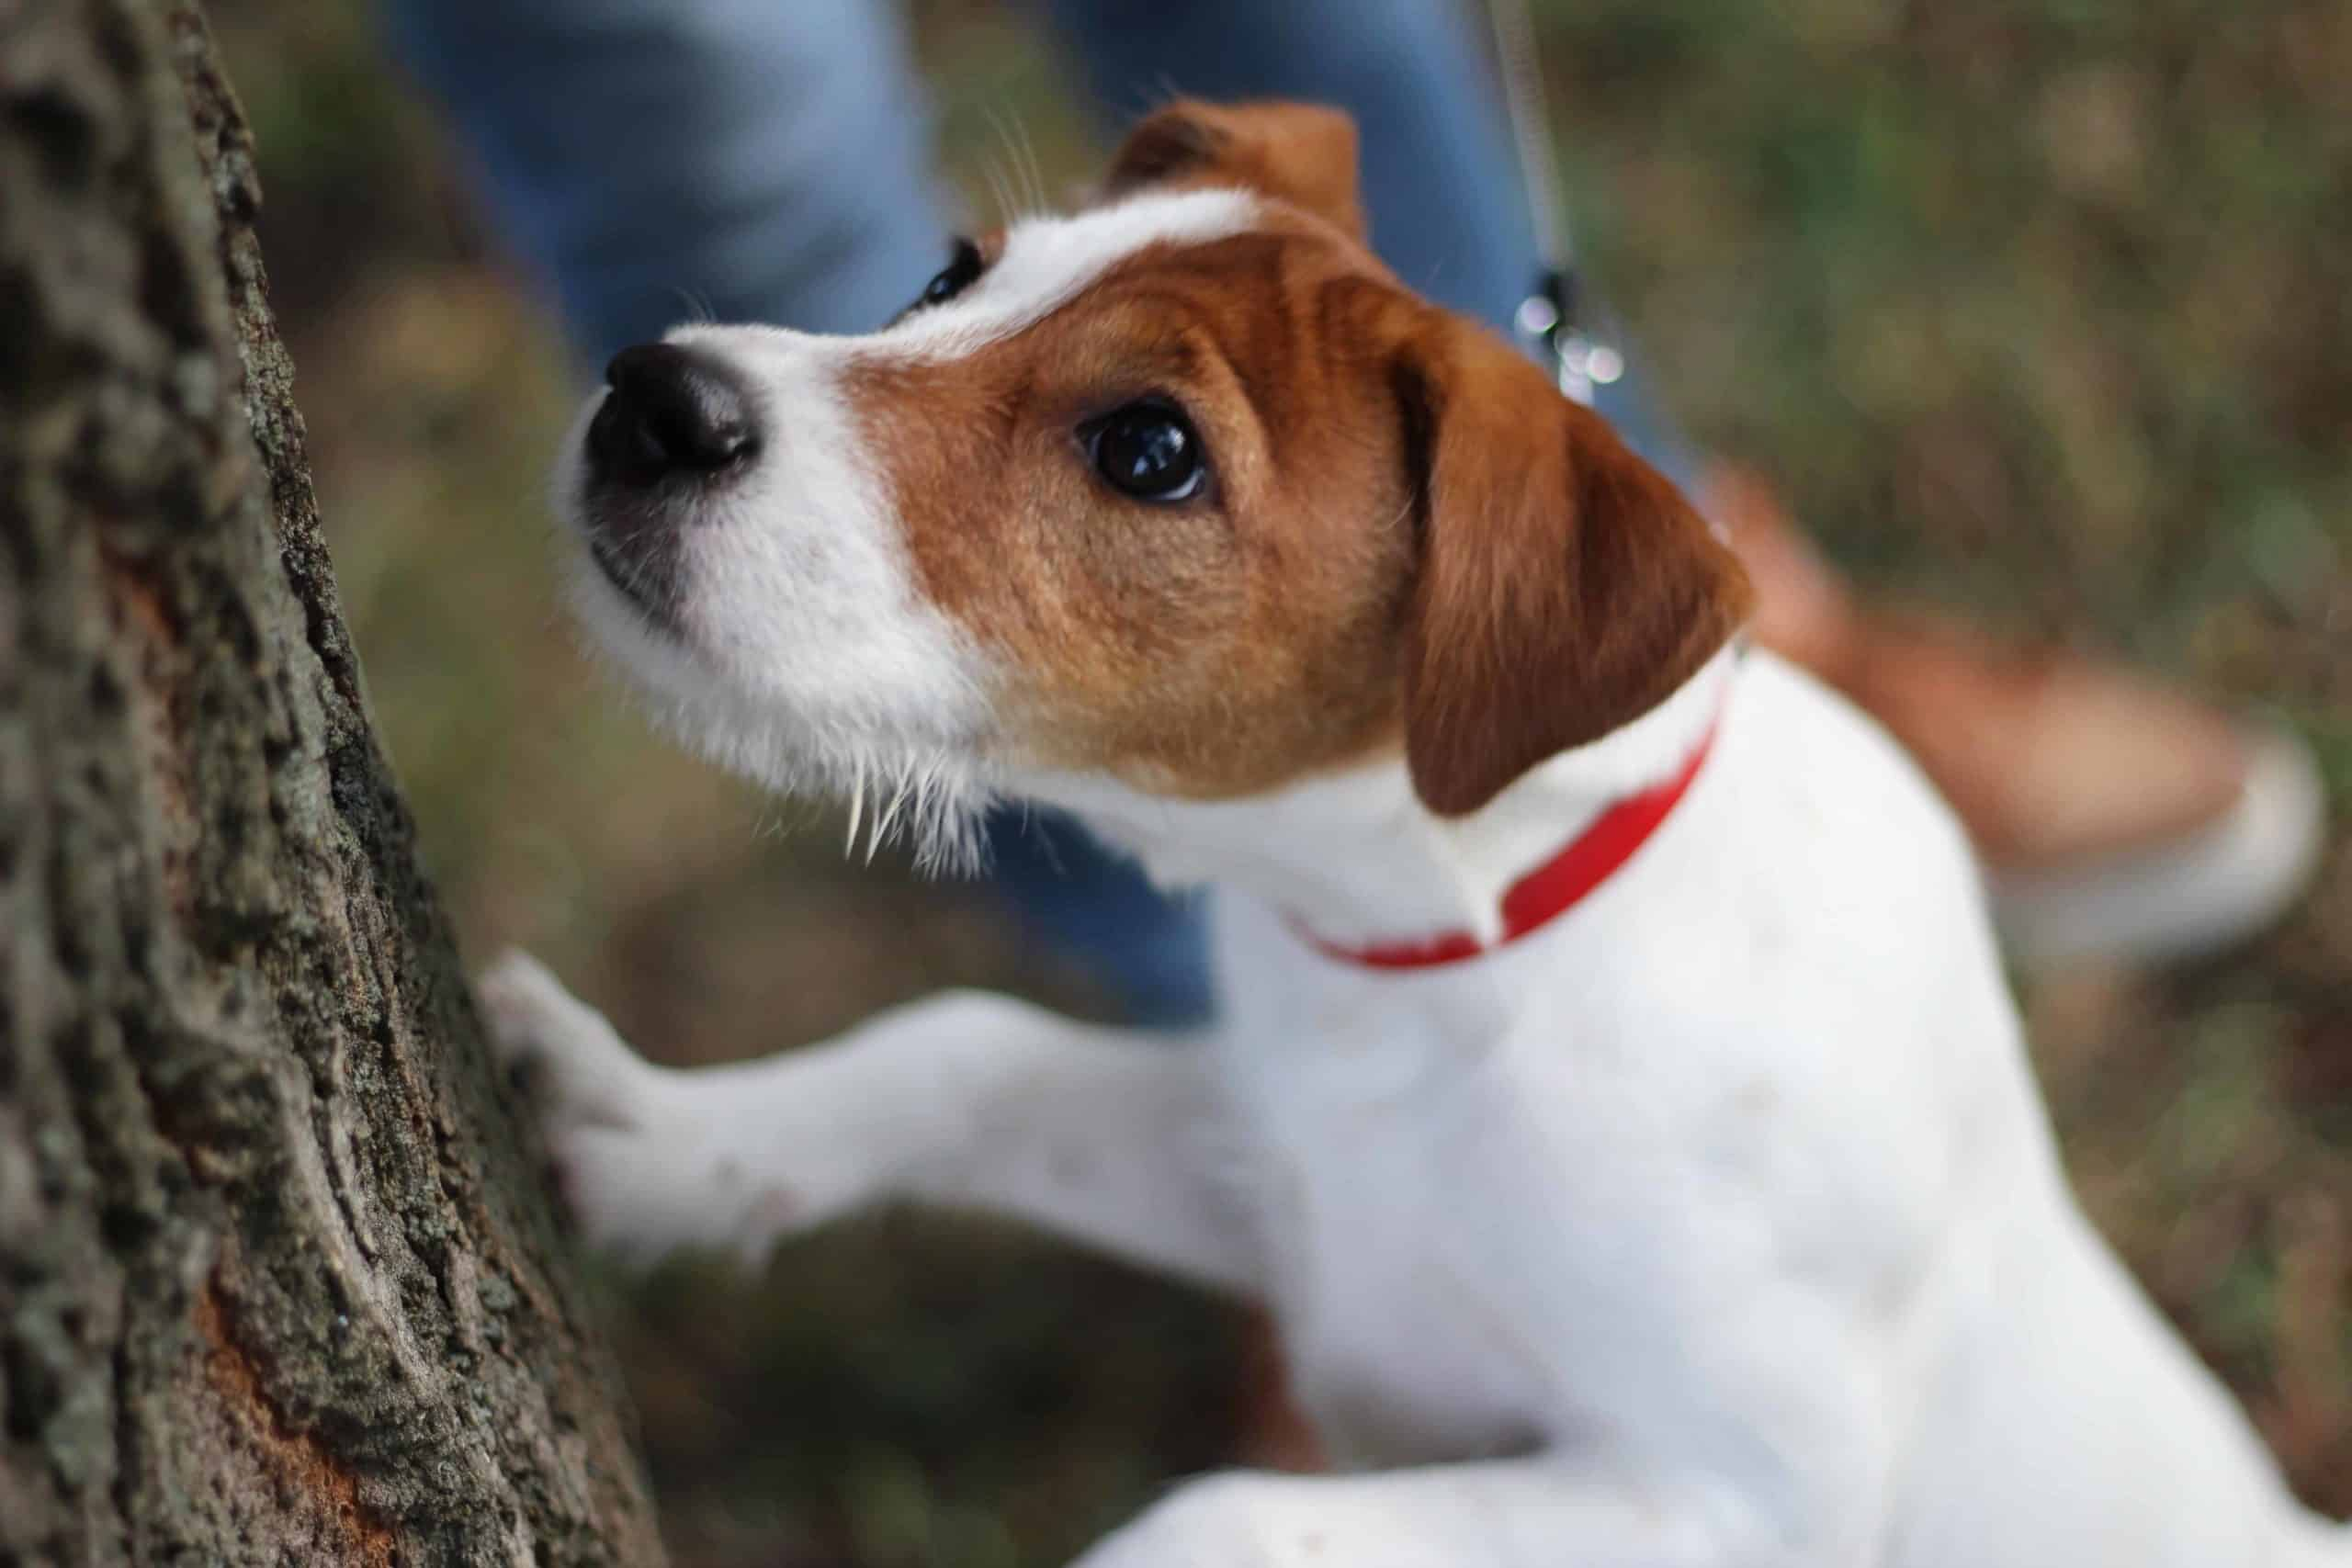 Jack Russell terrier chases squirrel up a tree. A heatwave can drive wild animals toward your home in an effort to find a cool place, which can cause a dangerous confrontation with your dog.